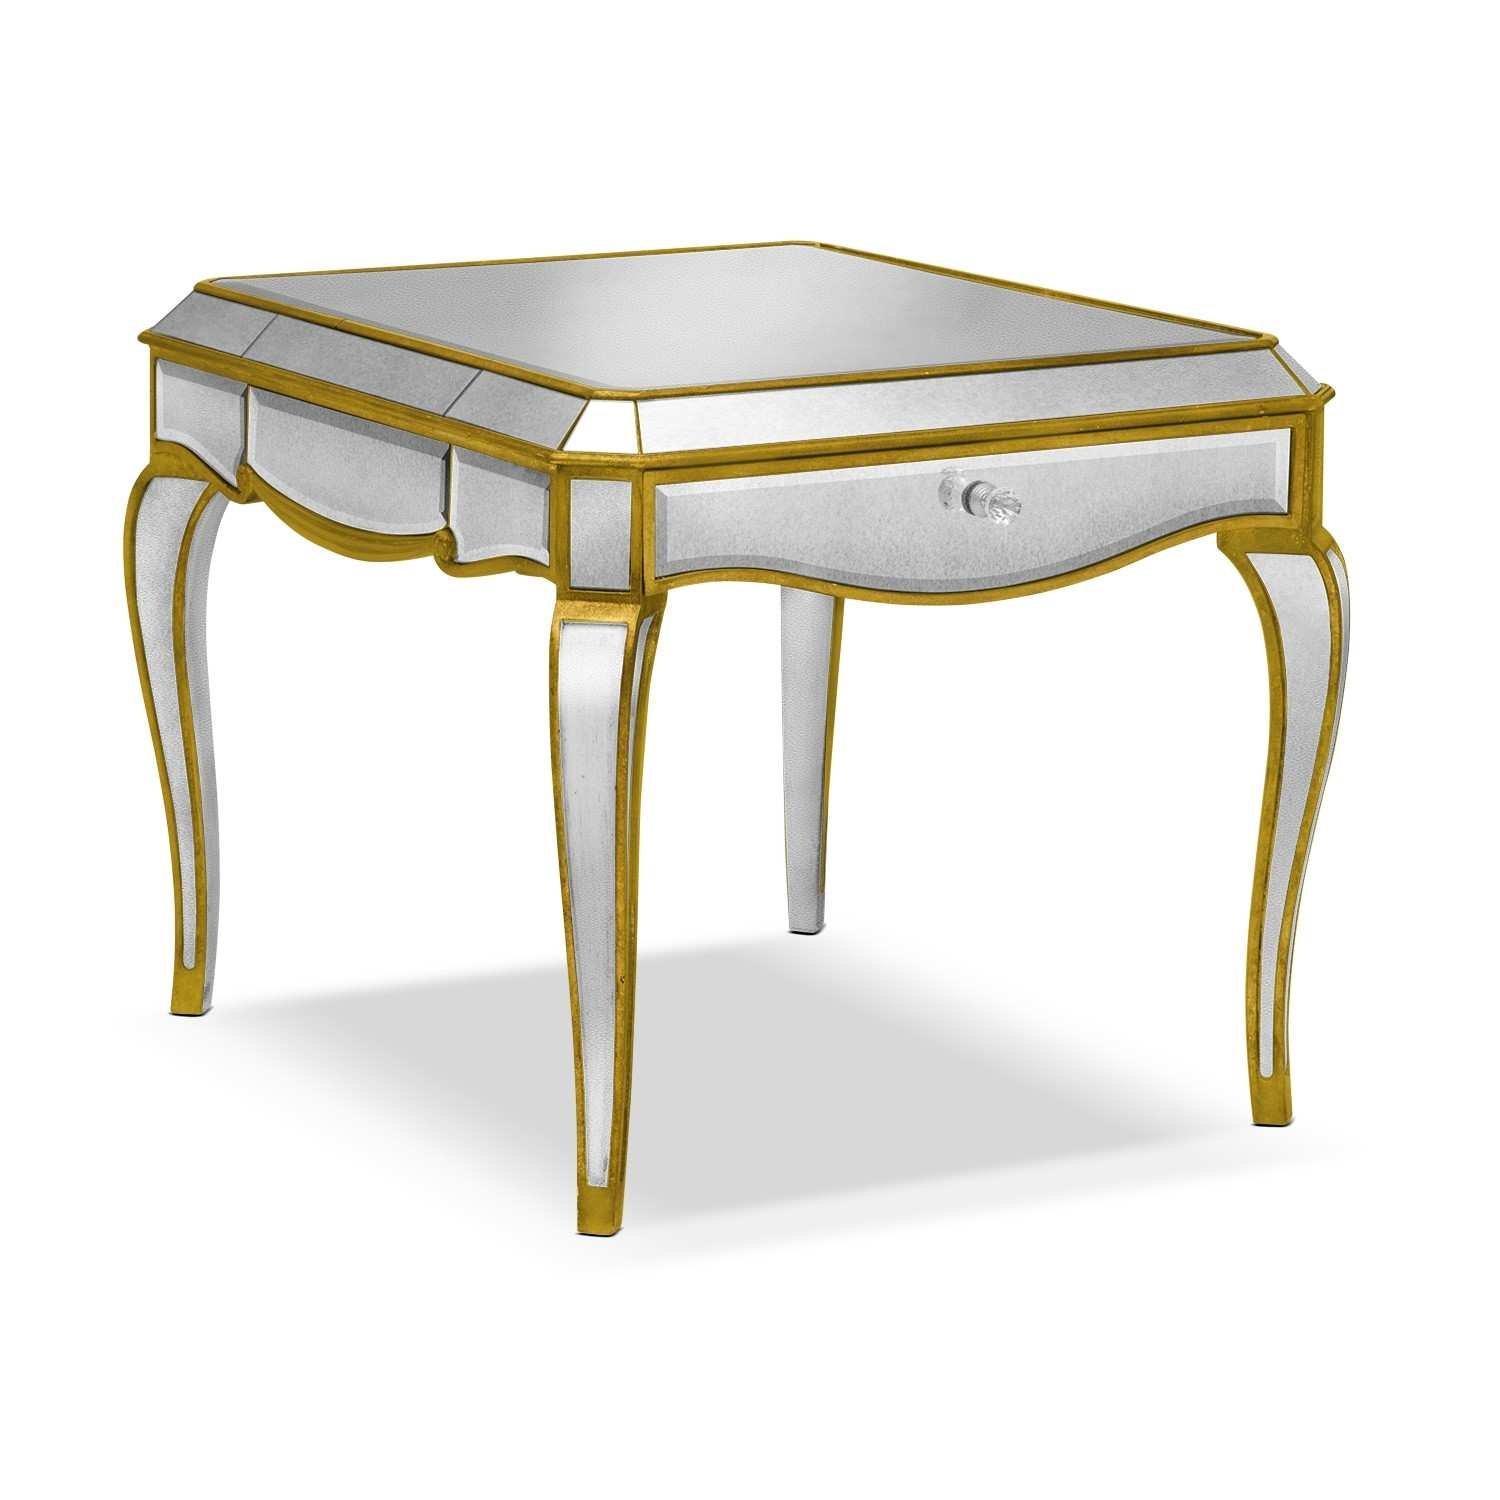 best value city furniture end tables for accent table ideas luxurious living room inch nightstand target gold desk lamp outdoor with umbrella glass dining set top side home decor